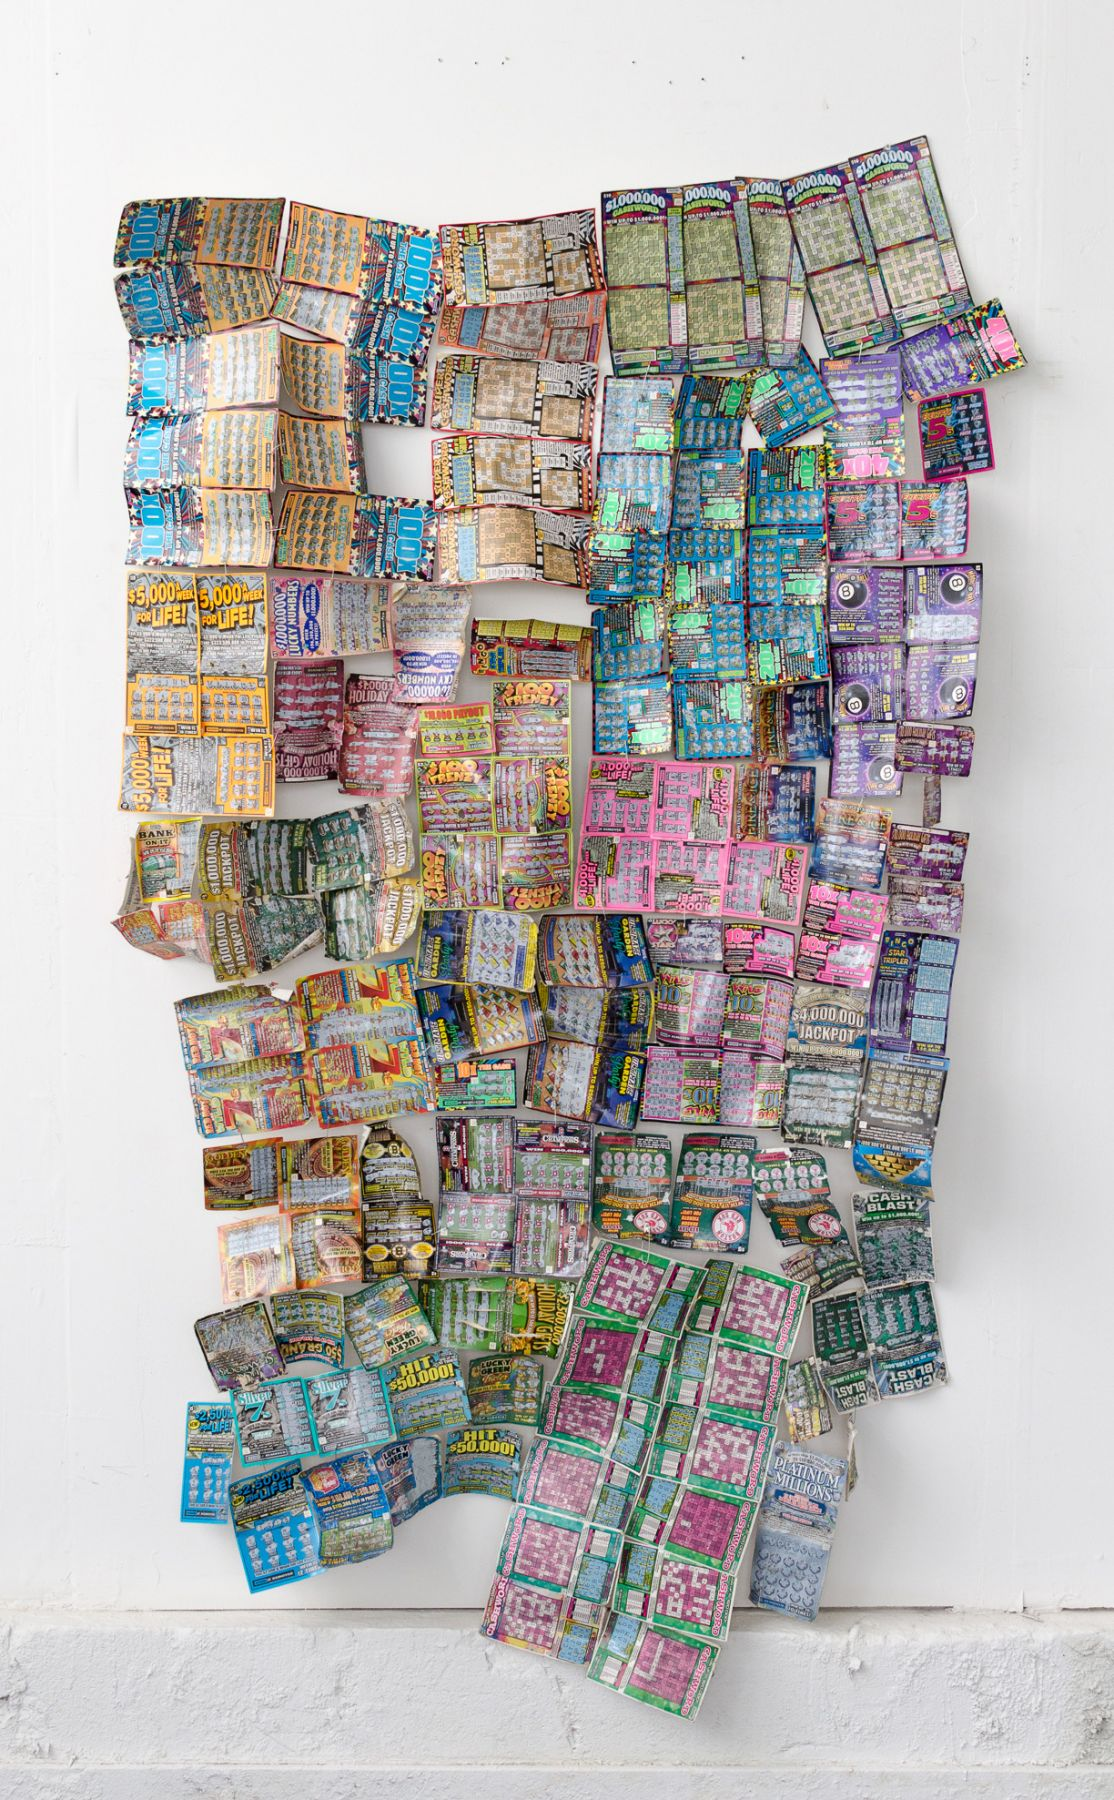 WILMER WILSON IV  Boston Fabric  2015/2017, lottery tickets, safety pins, dimensions variable